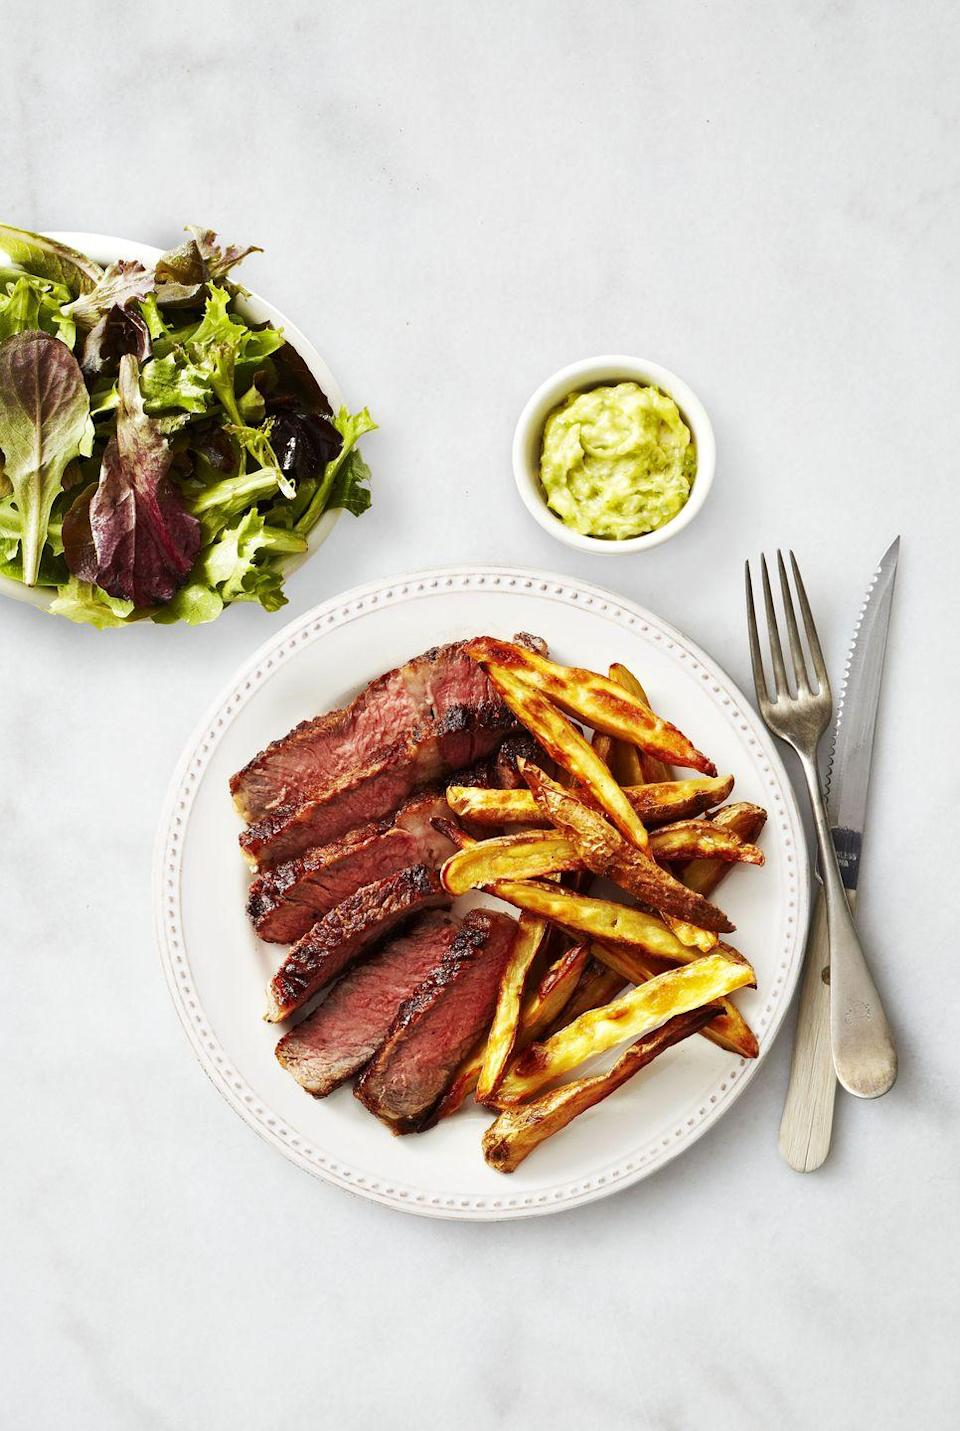 """<p>Would you believe this steakhouse-quality dinner takes less than 20 minutes to throw together? It's true.</p><p><a href=""""https://www.goodhousekeeping.com/food-recipes/a37300/steak-and-fingerling-frites-recipe/"""" rel=""""nofollow noopener"""" target=""""_blank"""" data-ylk=""""slk:Get the recipe for Steak and Fingerling Frites »"""" class=""""link rapid-noclick-resp""""><em>Get the recipe for Steak and Fingerling Frites »</em></a> </p>"""